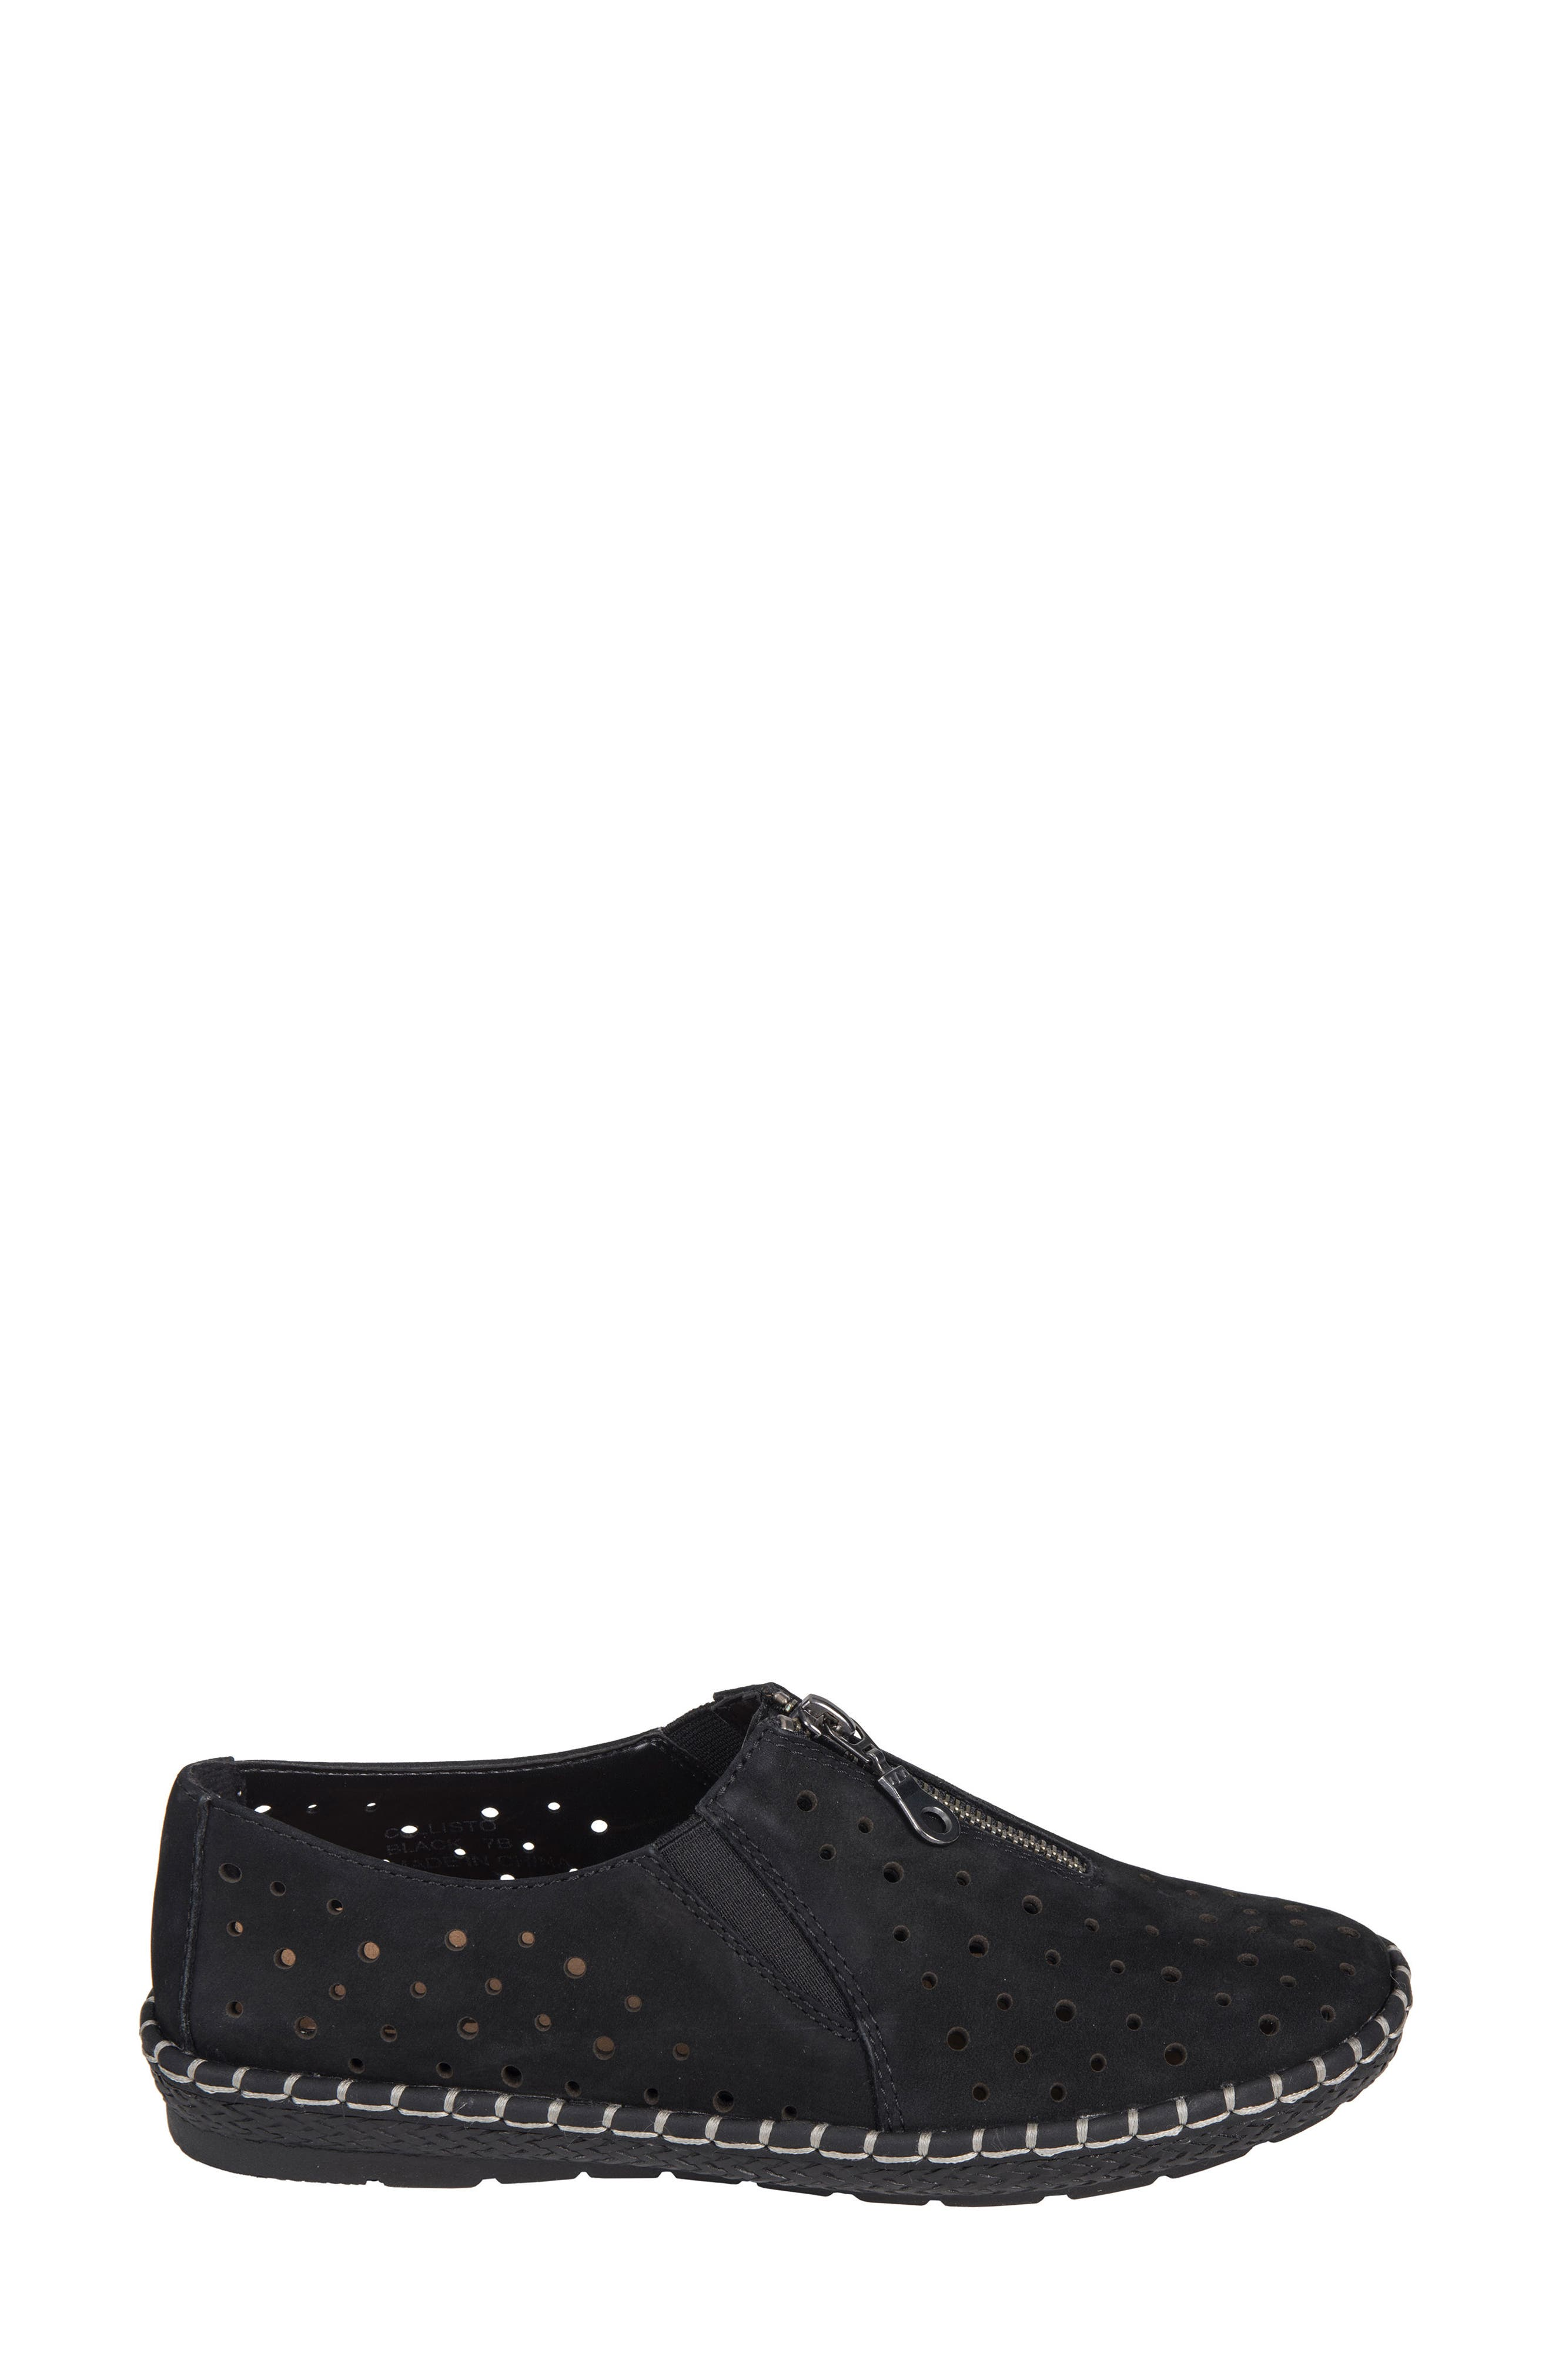 Callisto Perforated Zip Moccasin,                             Alternate thumbnail 3, color,                             001